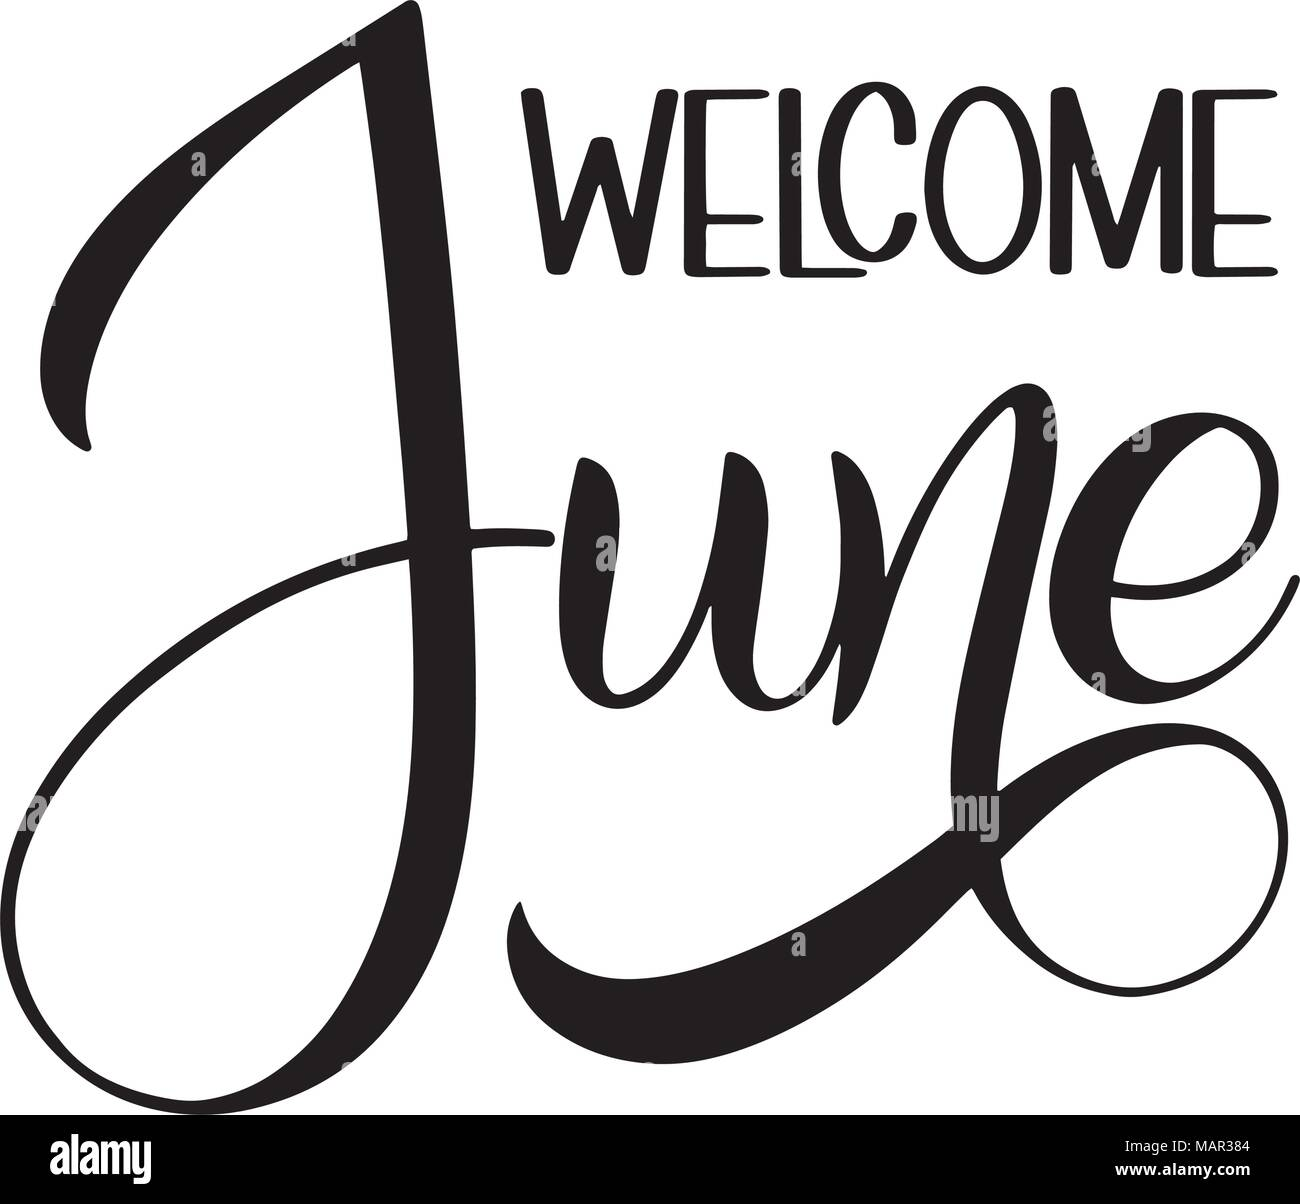 Welcome June Lettering Elements For Invitations Posters Greeting